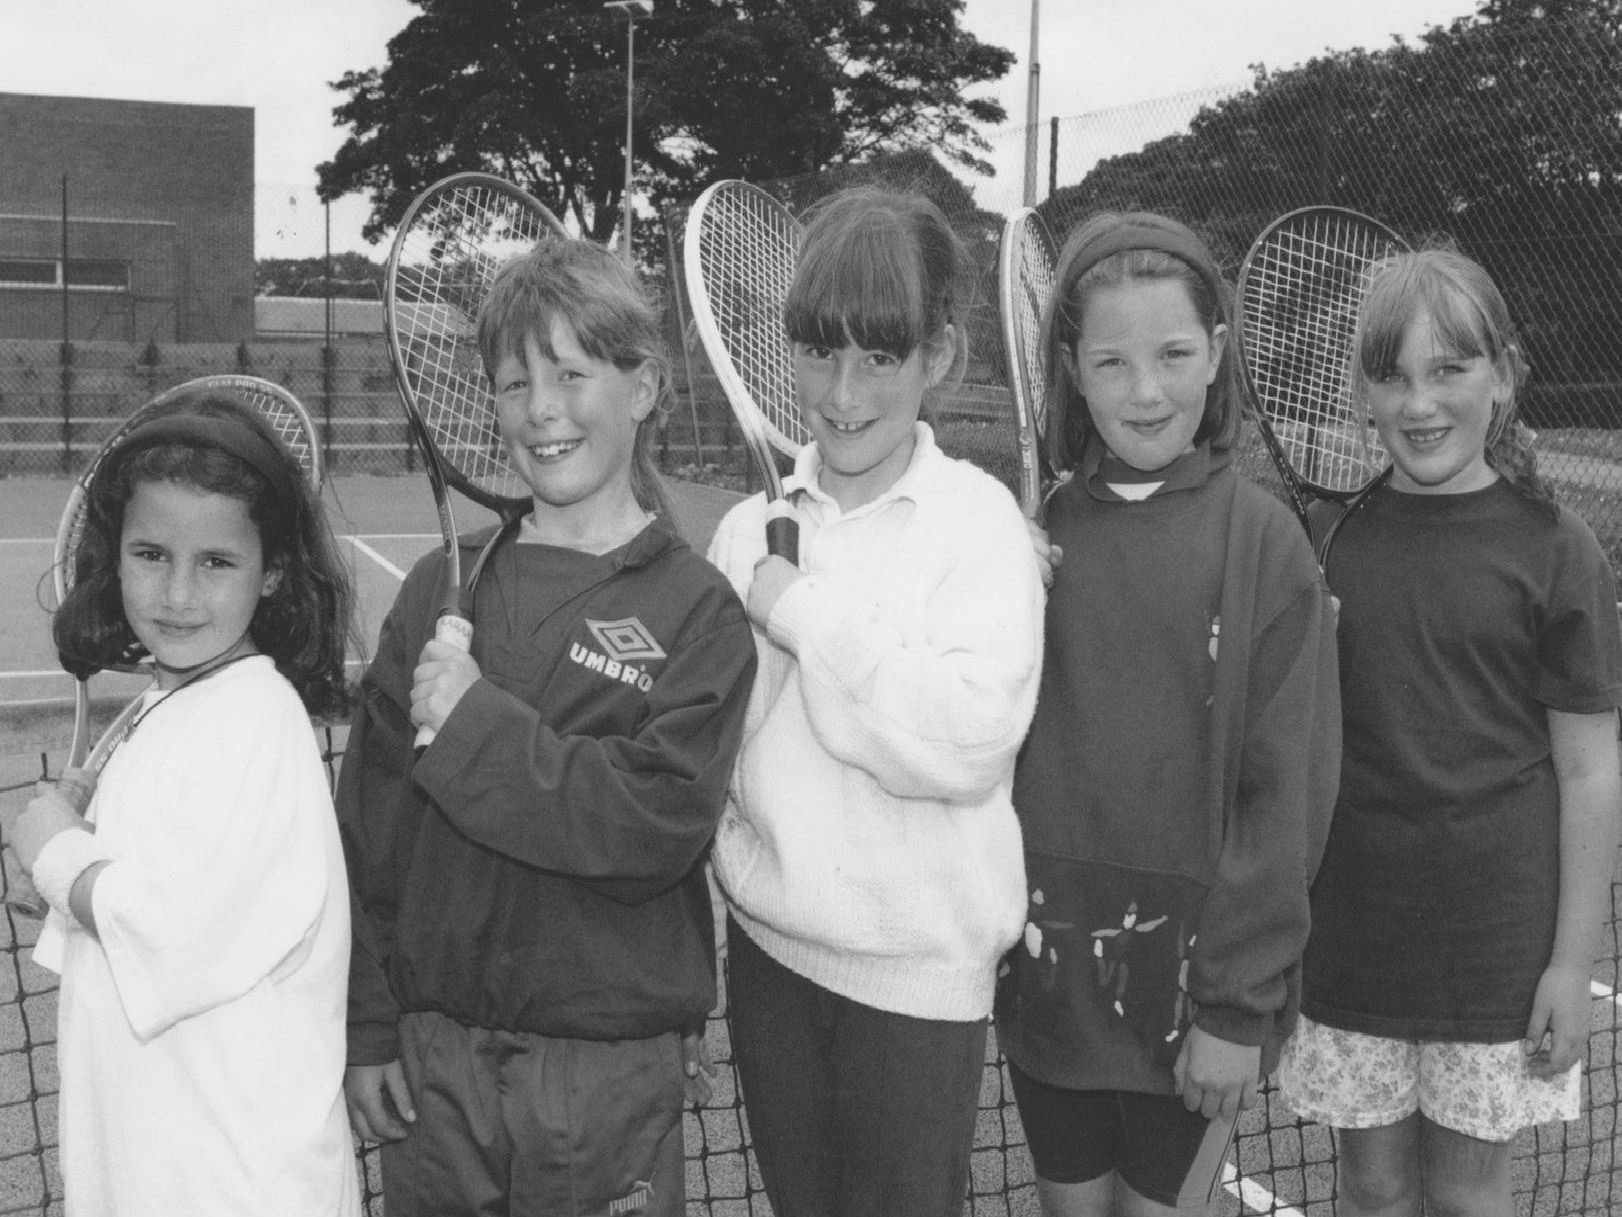 It was the girls' tennis tournament at the sports centre in June 1995. These were the five finalists, from left, Cathy Dalton, Rebecca Gibson, Ruth Griffiths, Hannah Cunningham, Suzanne Pennock.